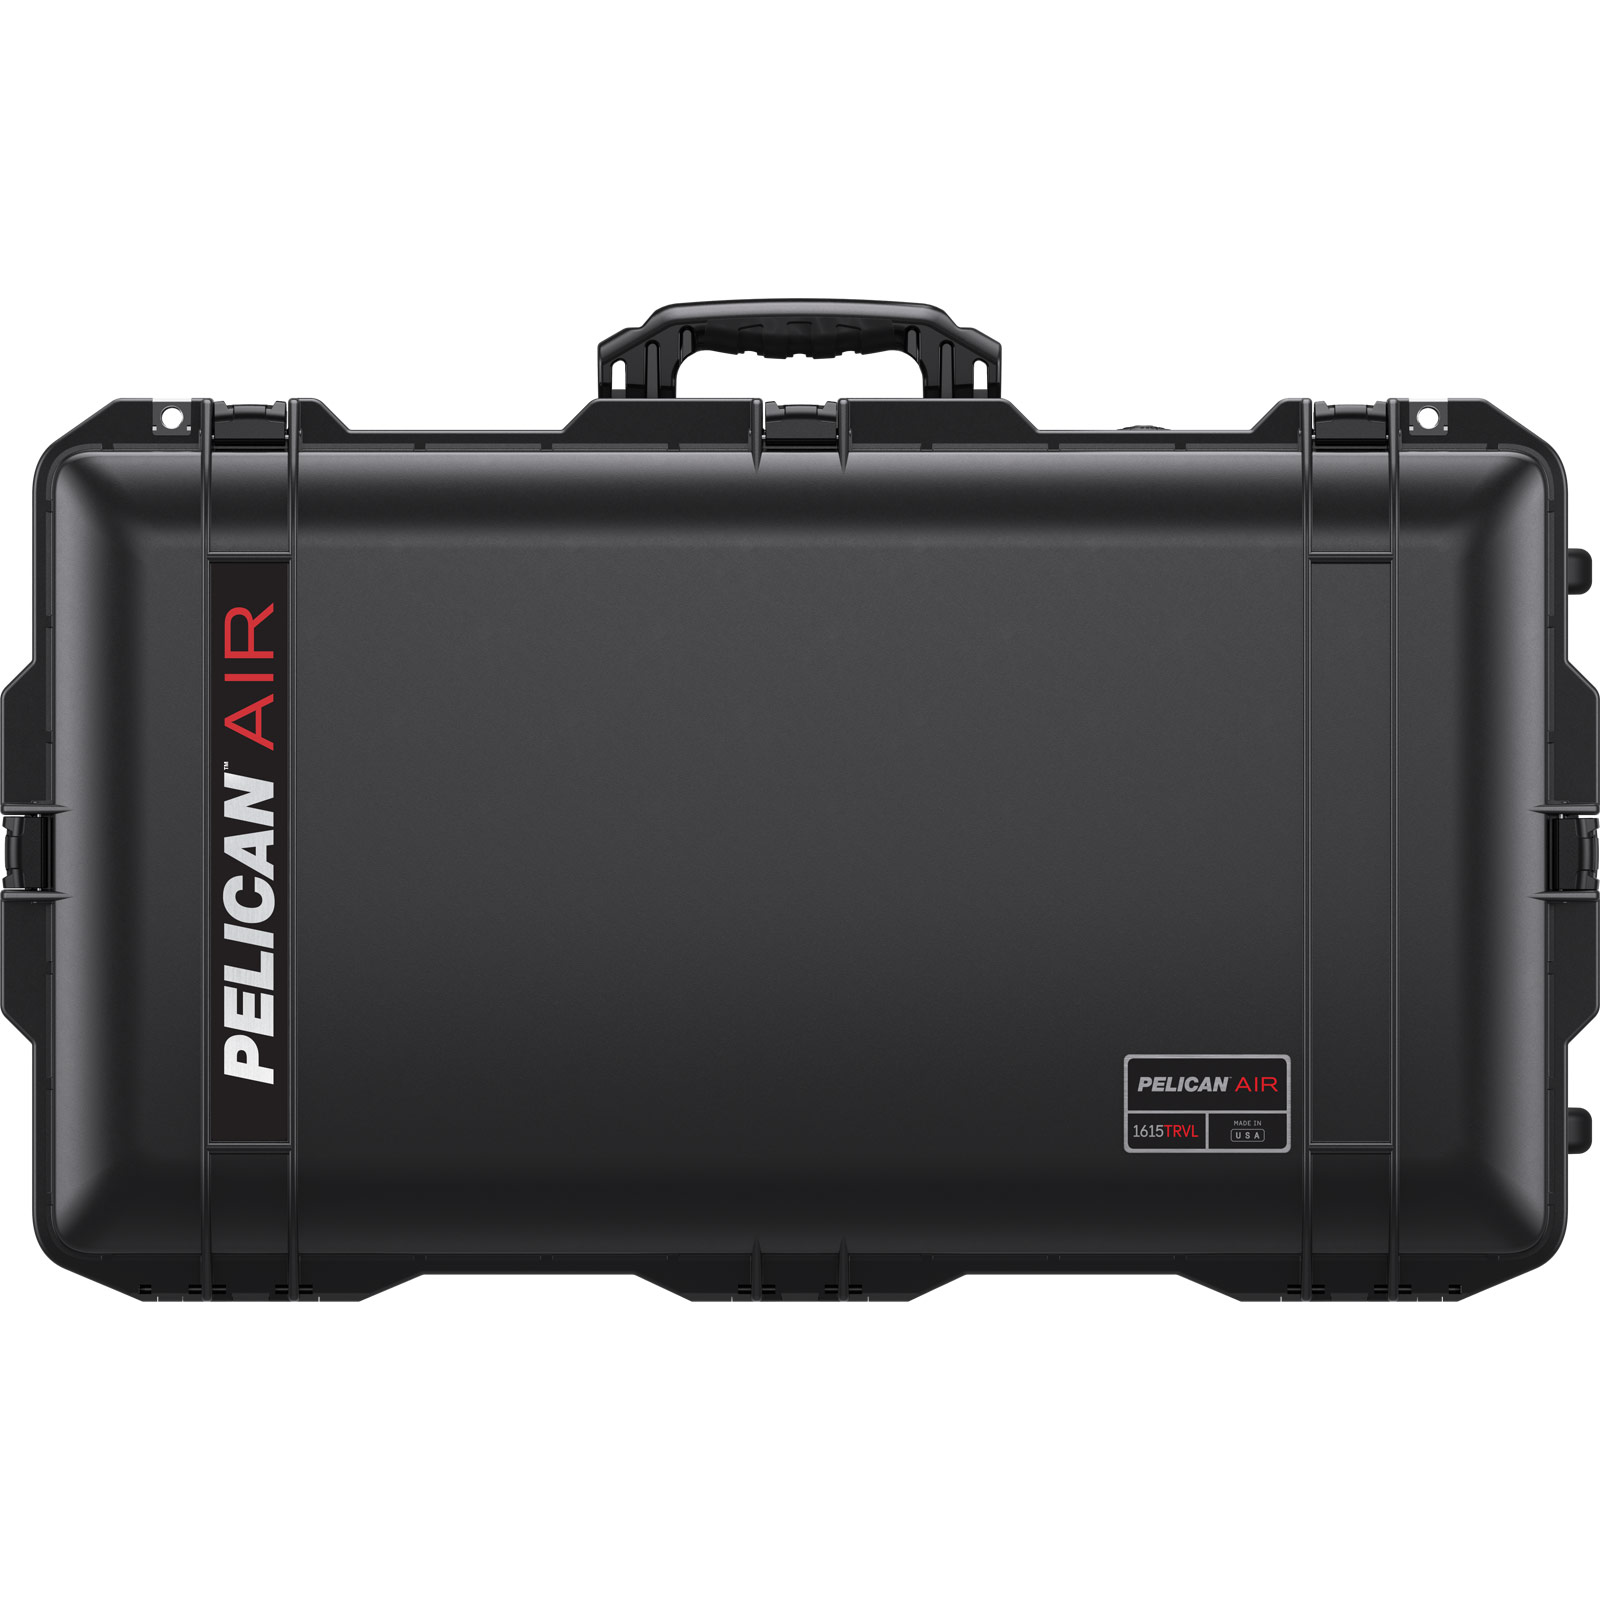 pelican 1615 air travel camera cases